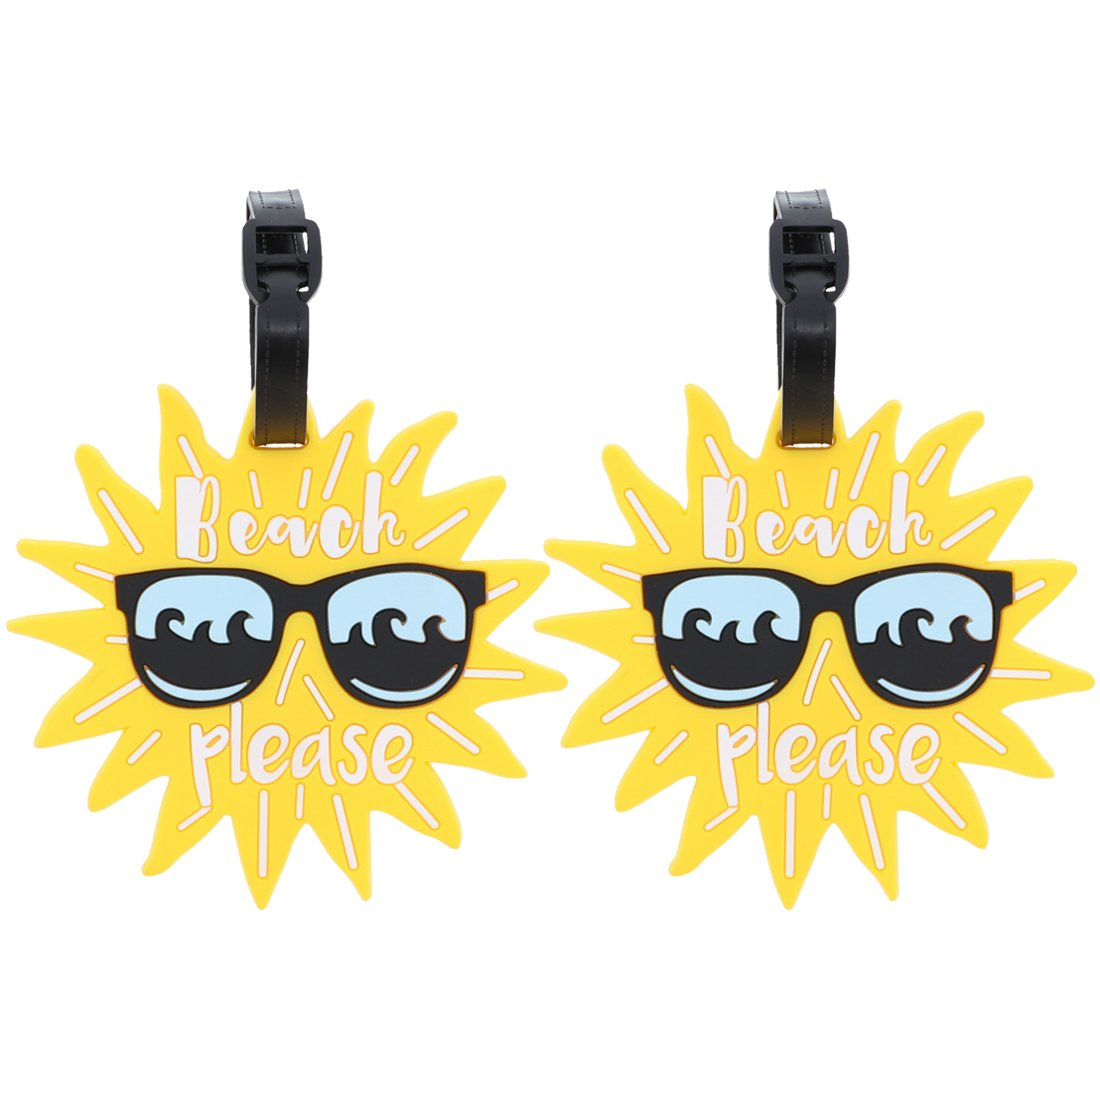 Beach Please Luggage Tag Suitcase ID Holder - Set of 2 SandT Collection 2STLT0032YL